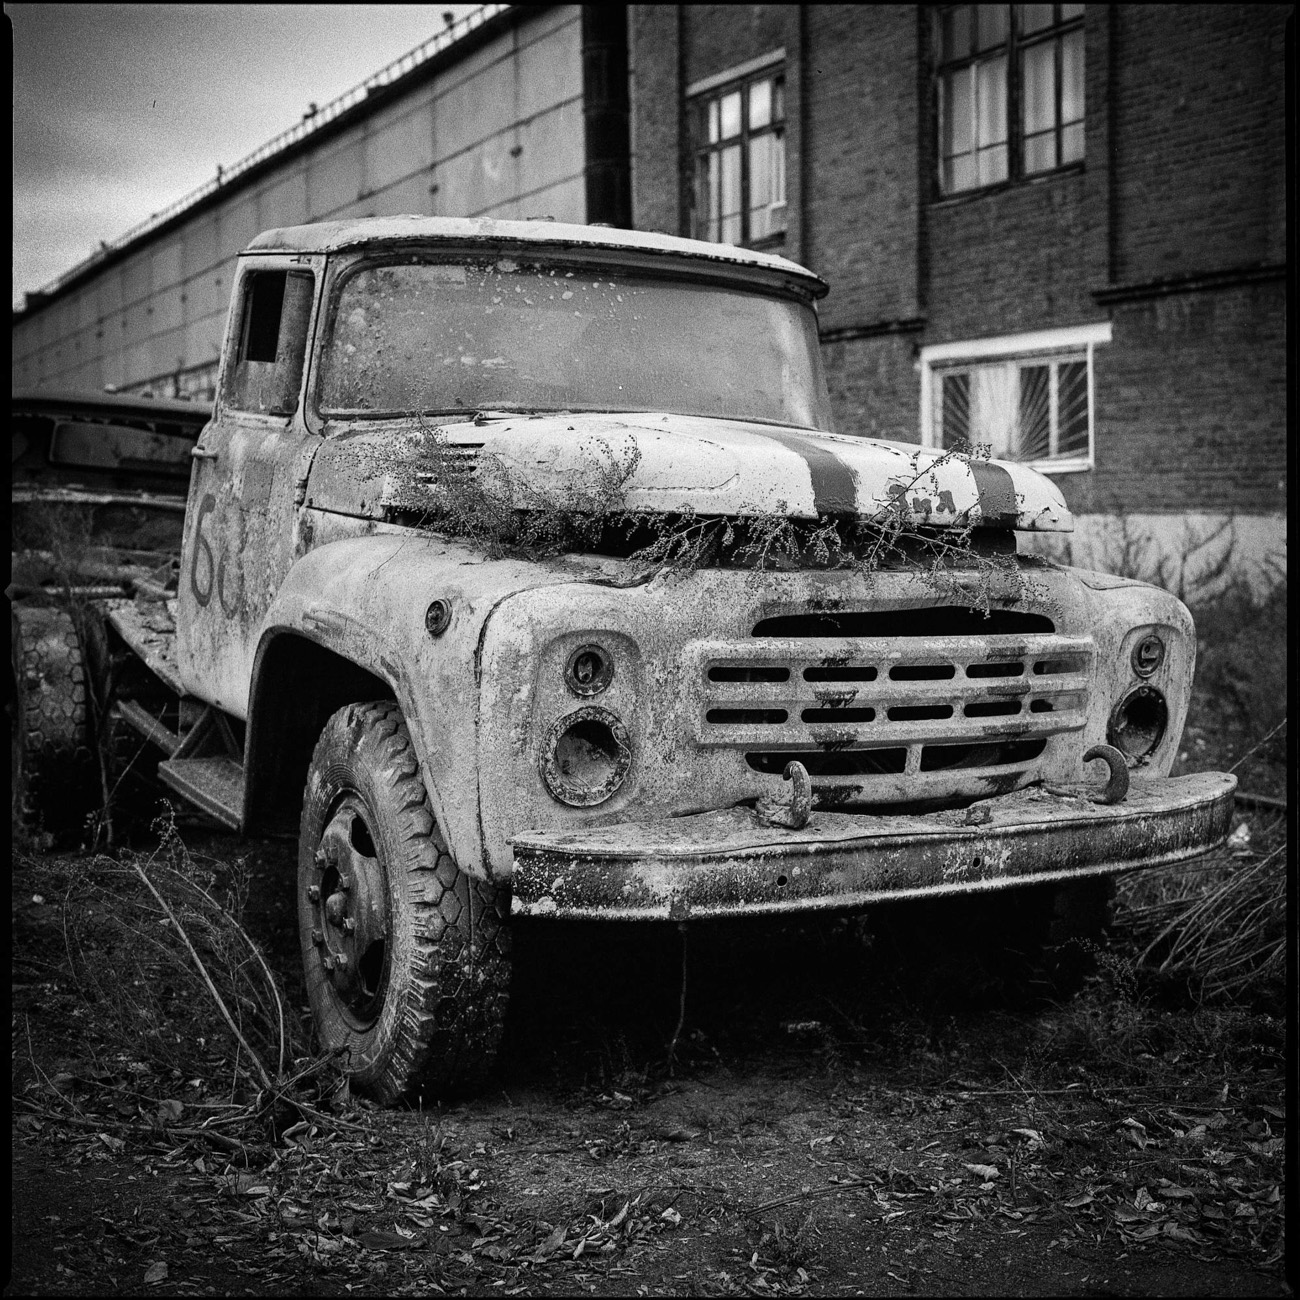 An abandoned ZIL 130 awaits its turn for the scrap heap. Back in 1963, it was one of the most modern trucks of its time. It was even given the USSR mark of quality.